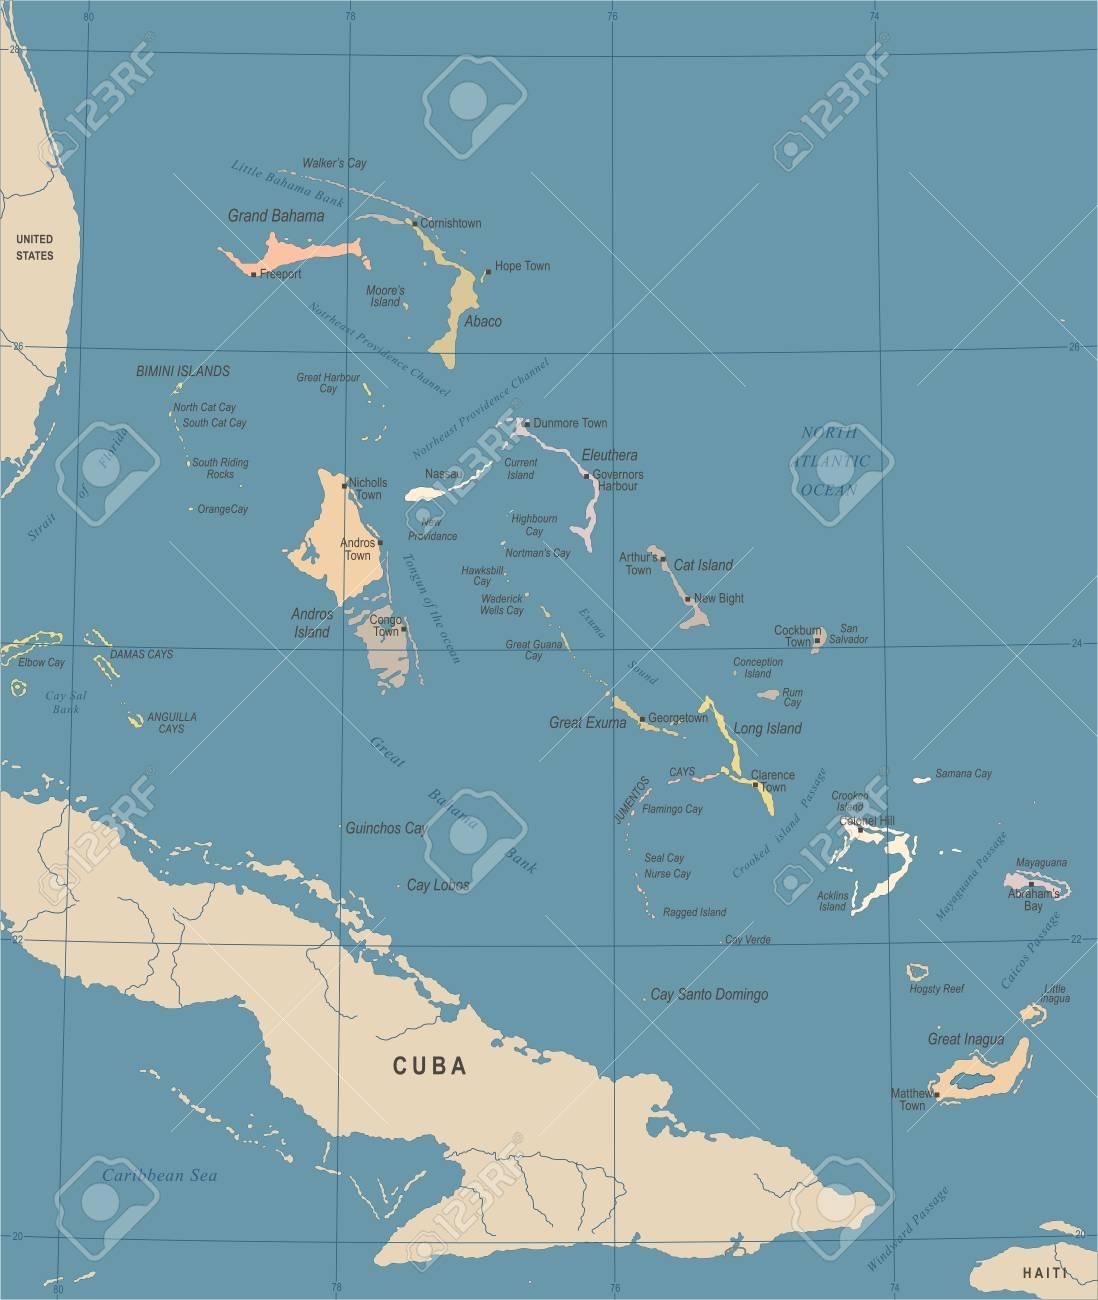 The Bahamas Map - Vintage High Detailed Vector Illustration Royalty ...